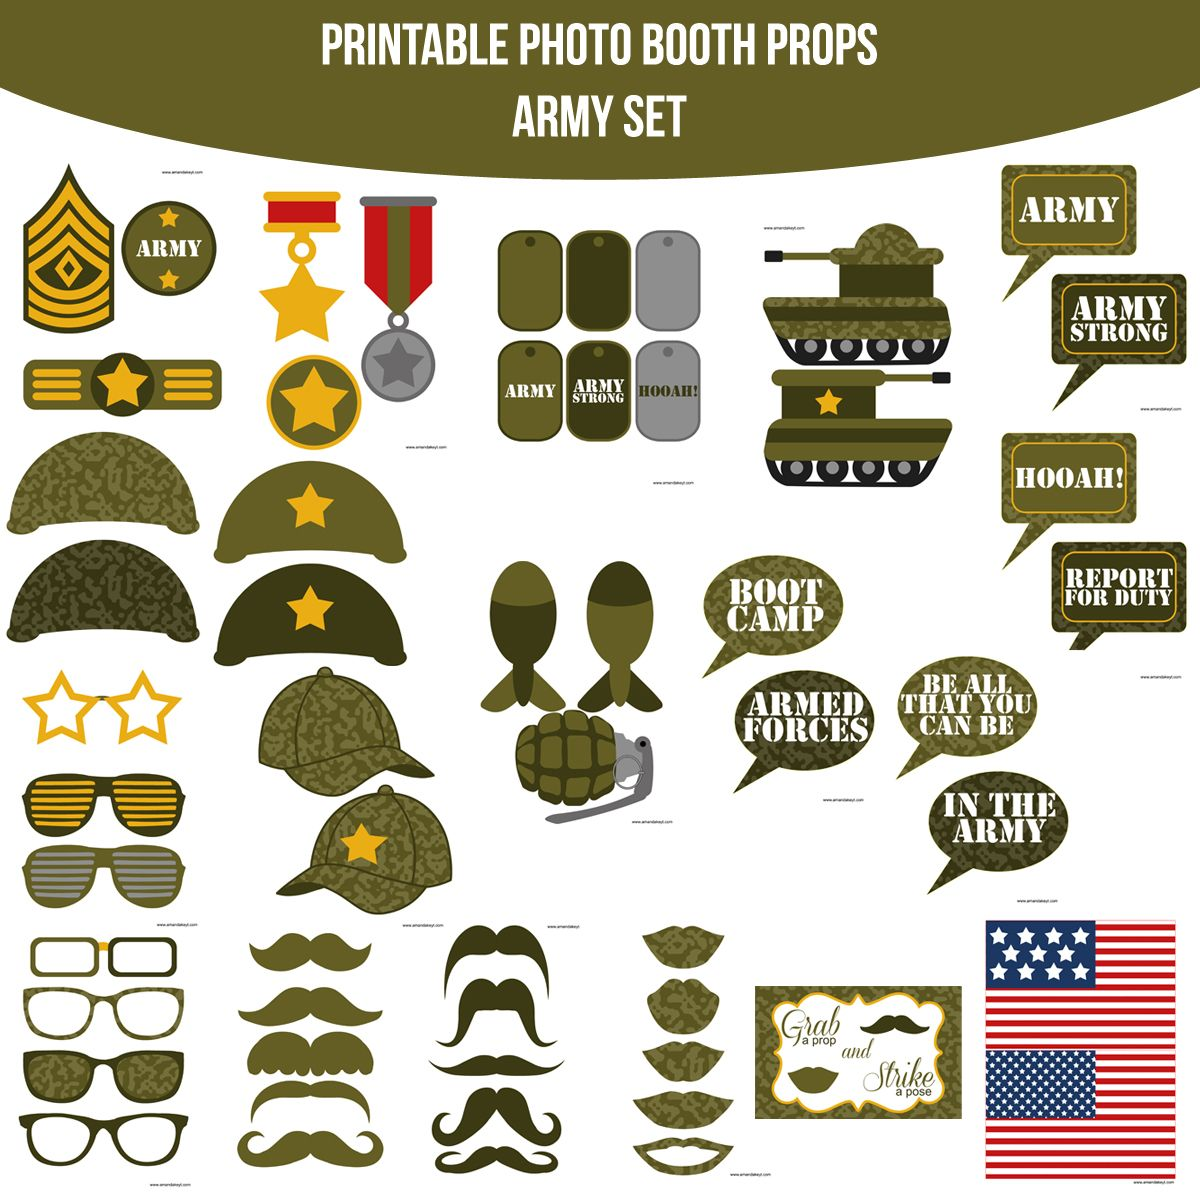 Instant Download Army Printable Photo Booth Prop Set — Amanda Keyt ...